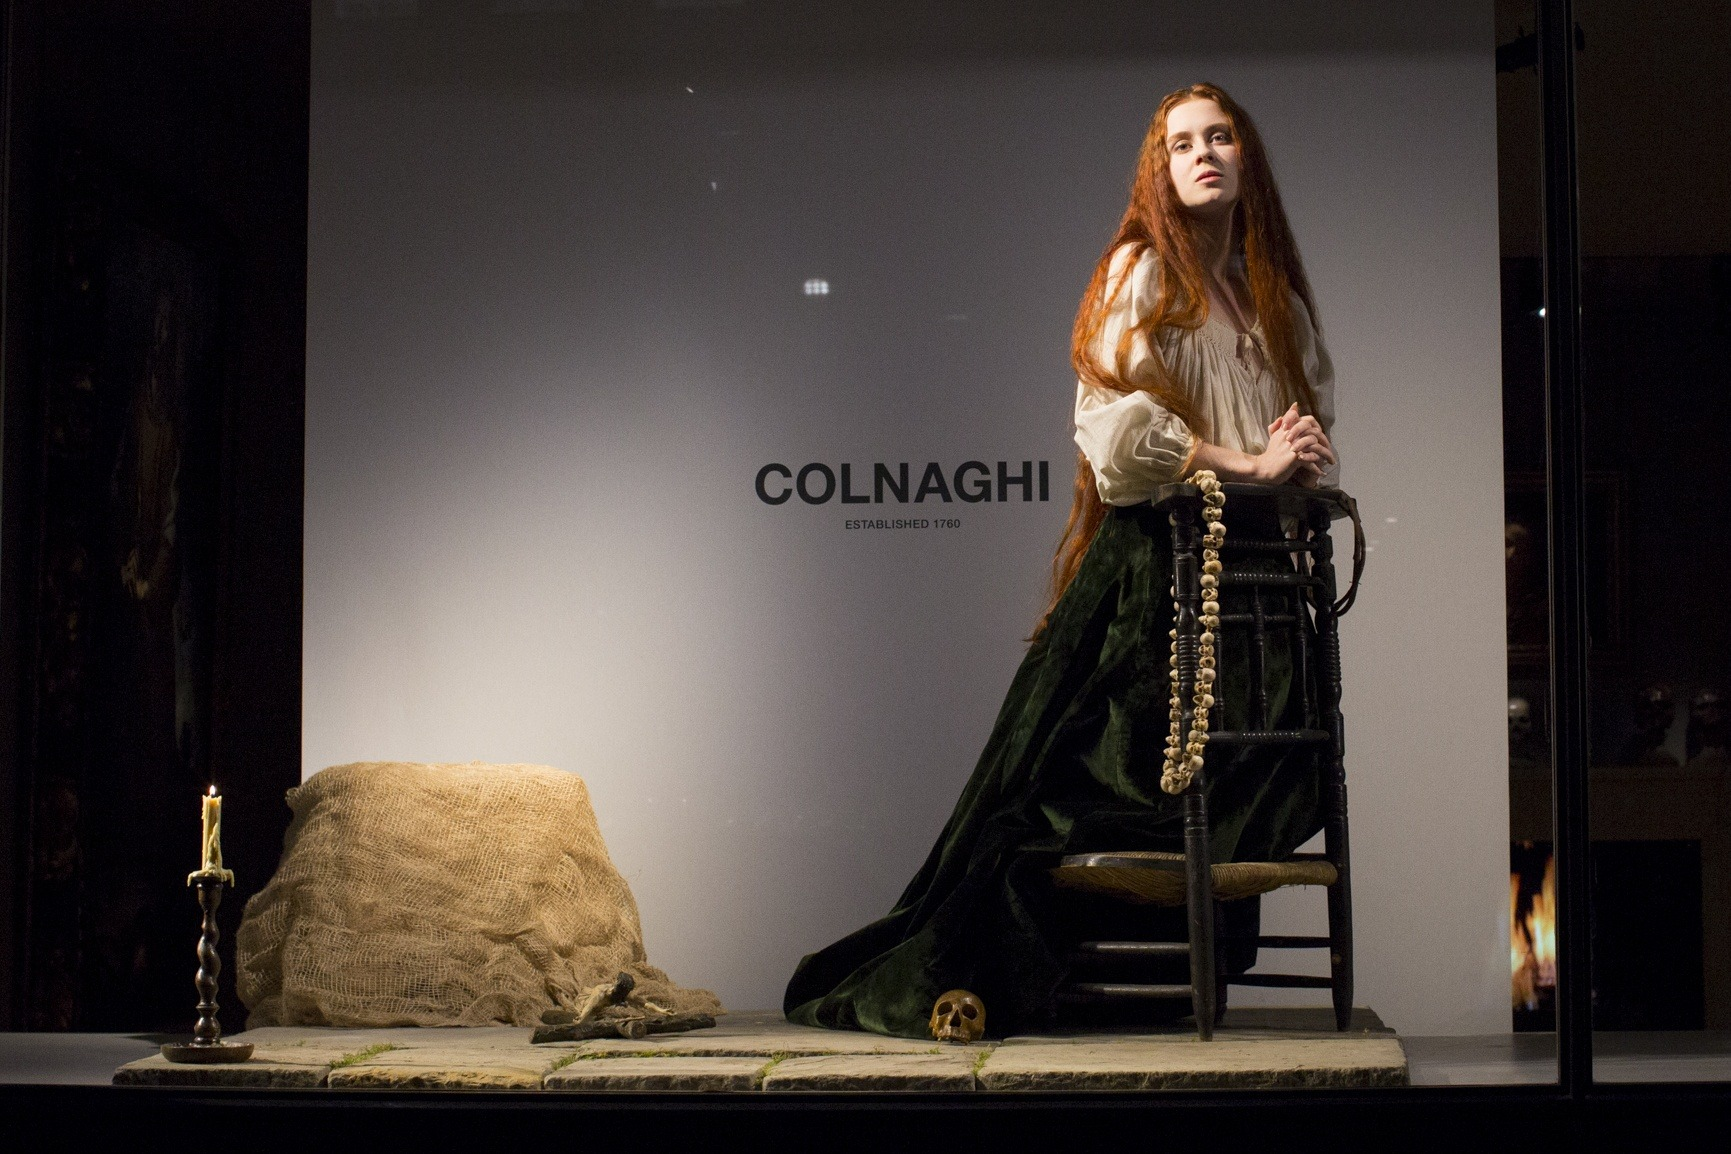 A BLEND OF FASHION & ART UNDER THE CREATIVE SPACE OF COLNAGHI GALLERY